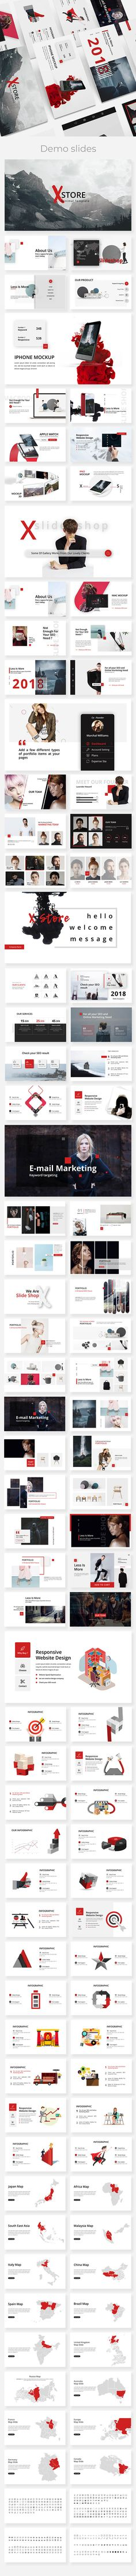 Xstore Minimal Powerpoint Template - Creative PowerPoint Templates